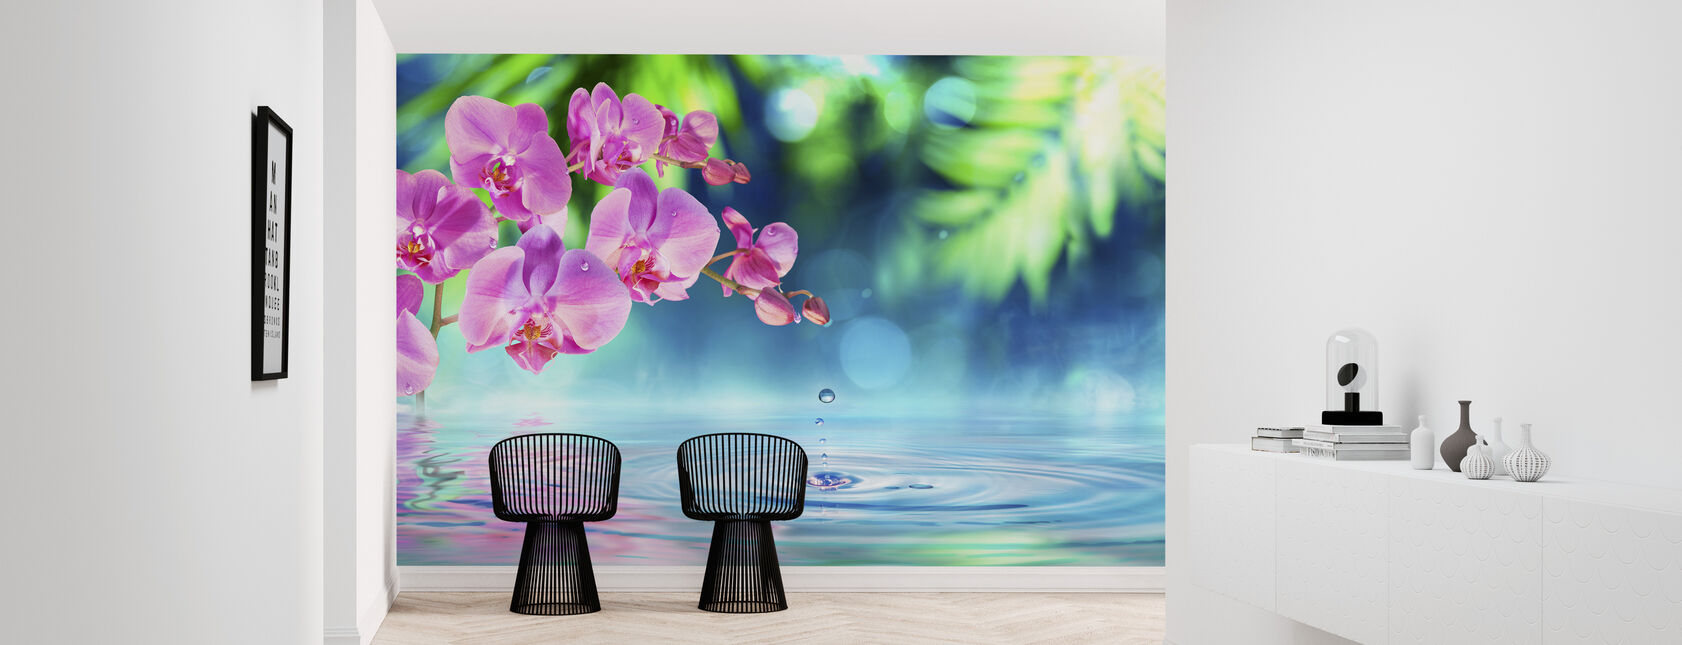 Zen Spa Orchid - Wallpaper - Hallway